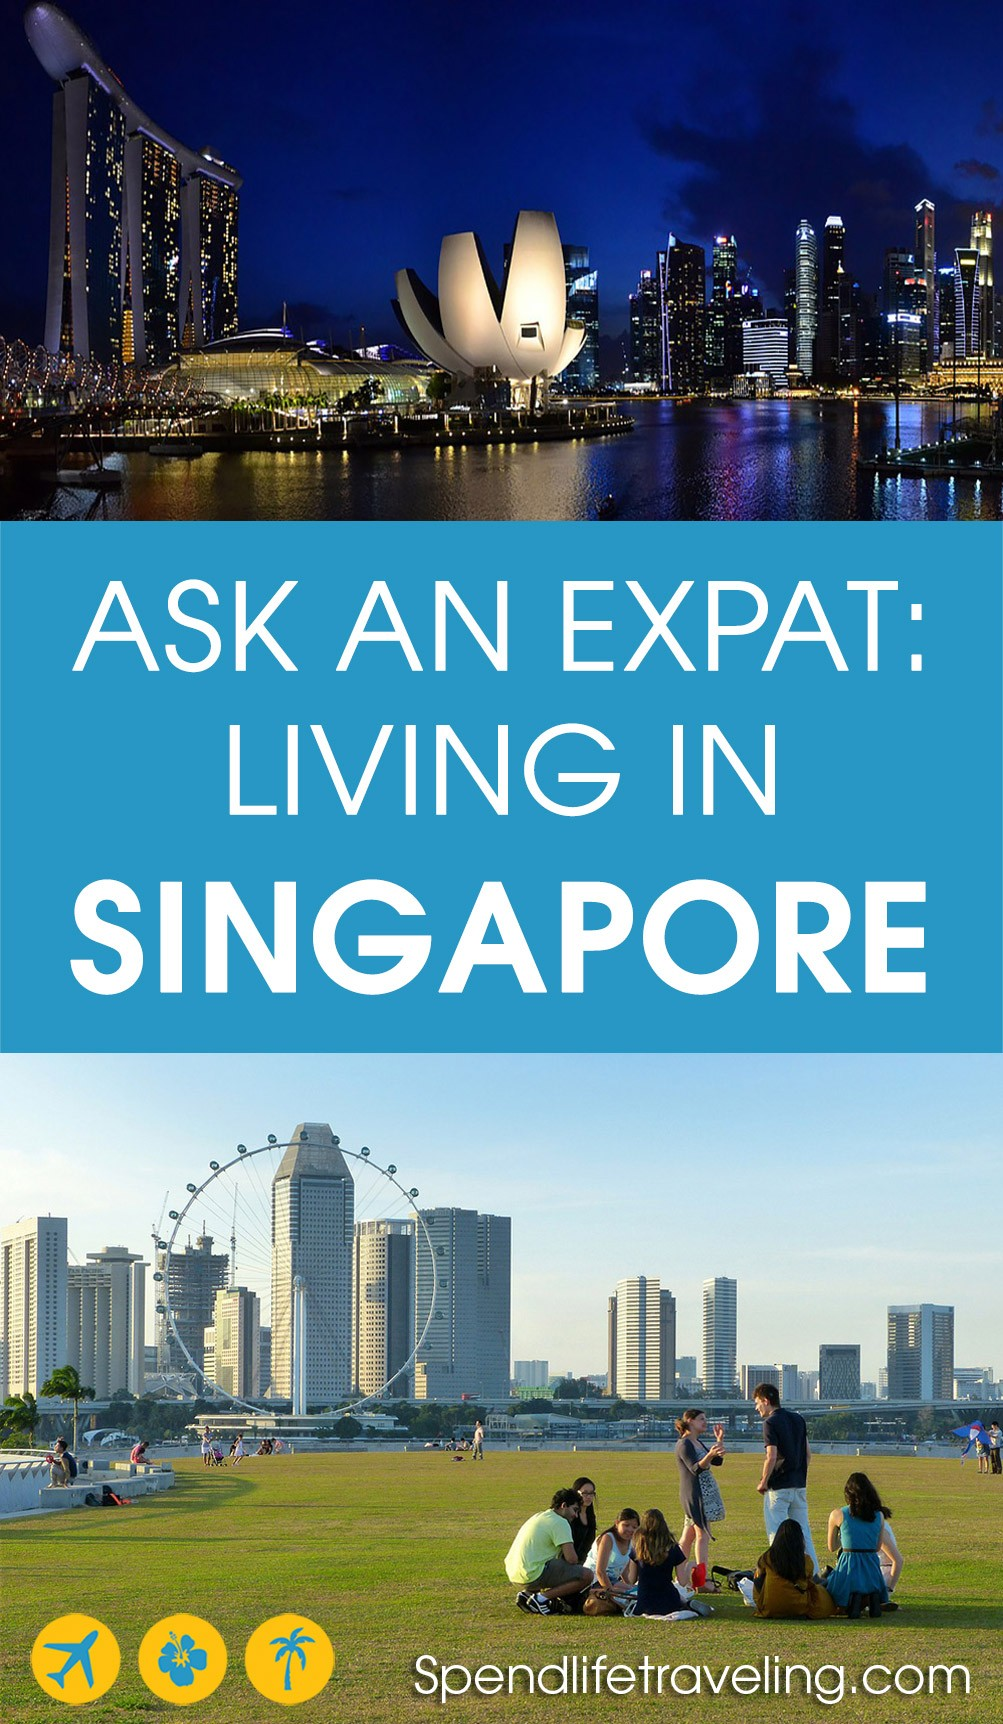 Expat life in #Singapore: interview with an expat about what it's like to move to and live in Singapore. #expatlife #expatSingapore